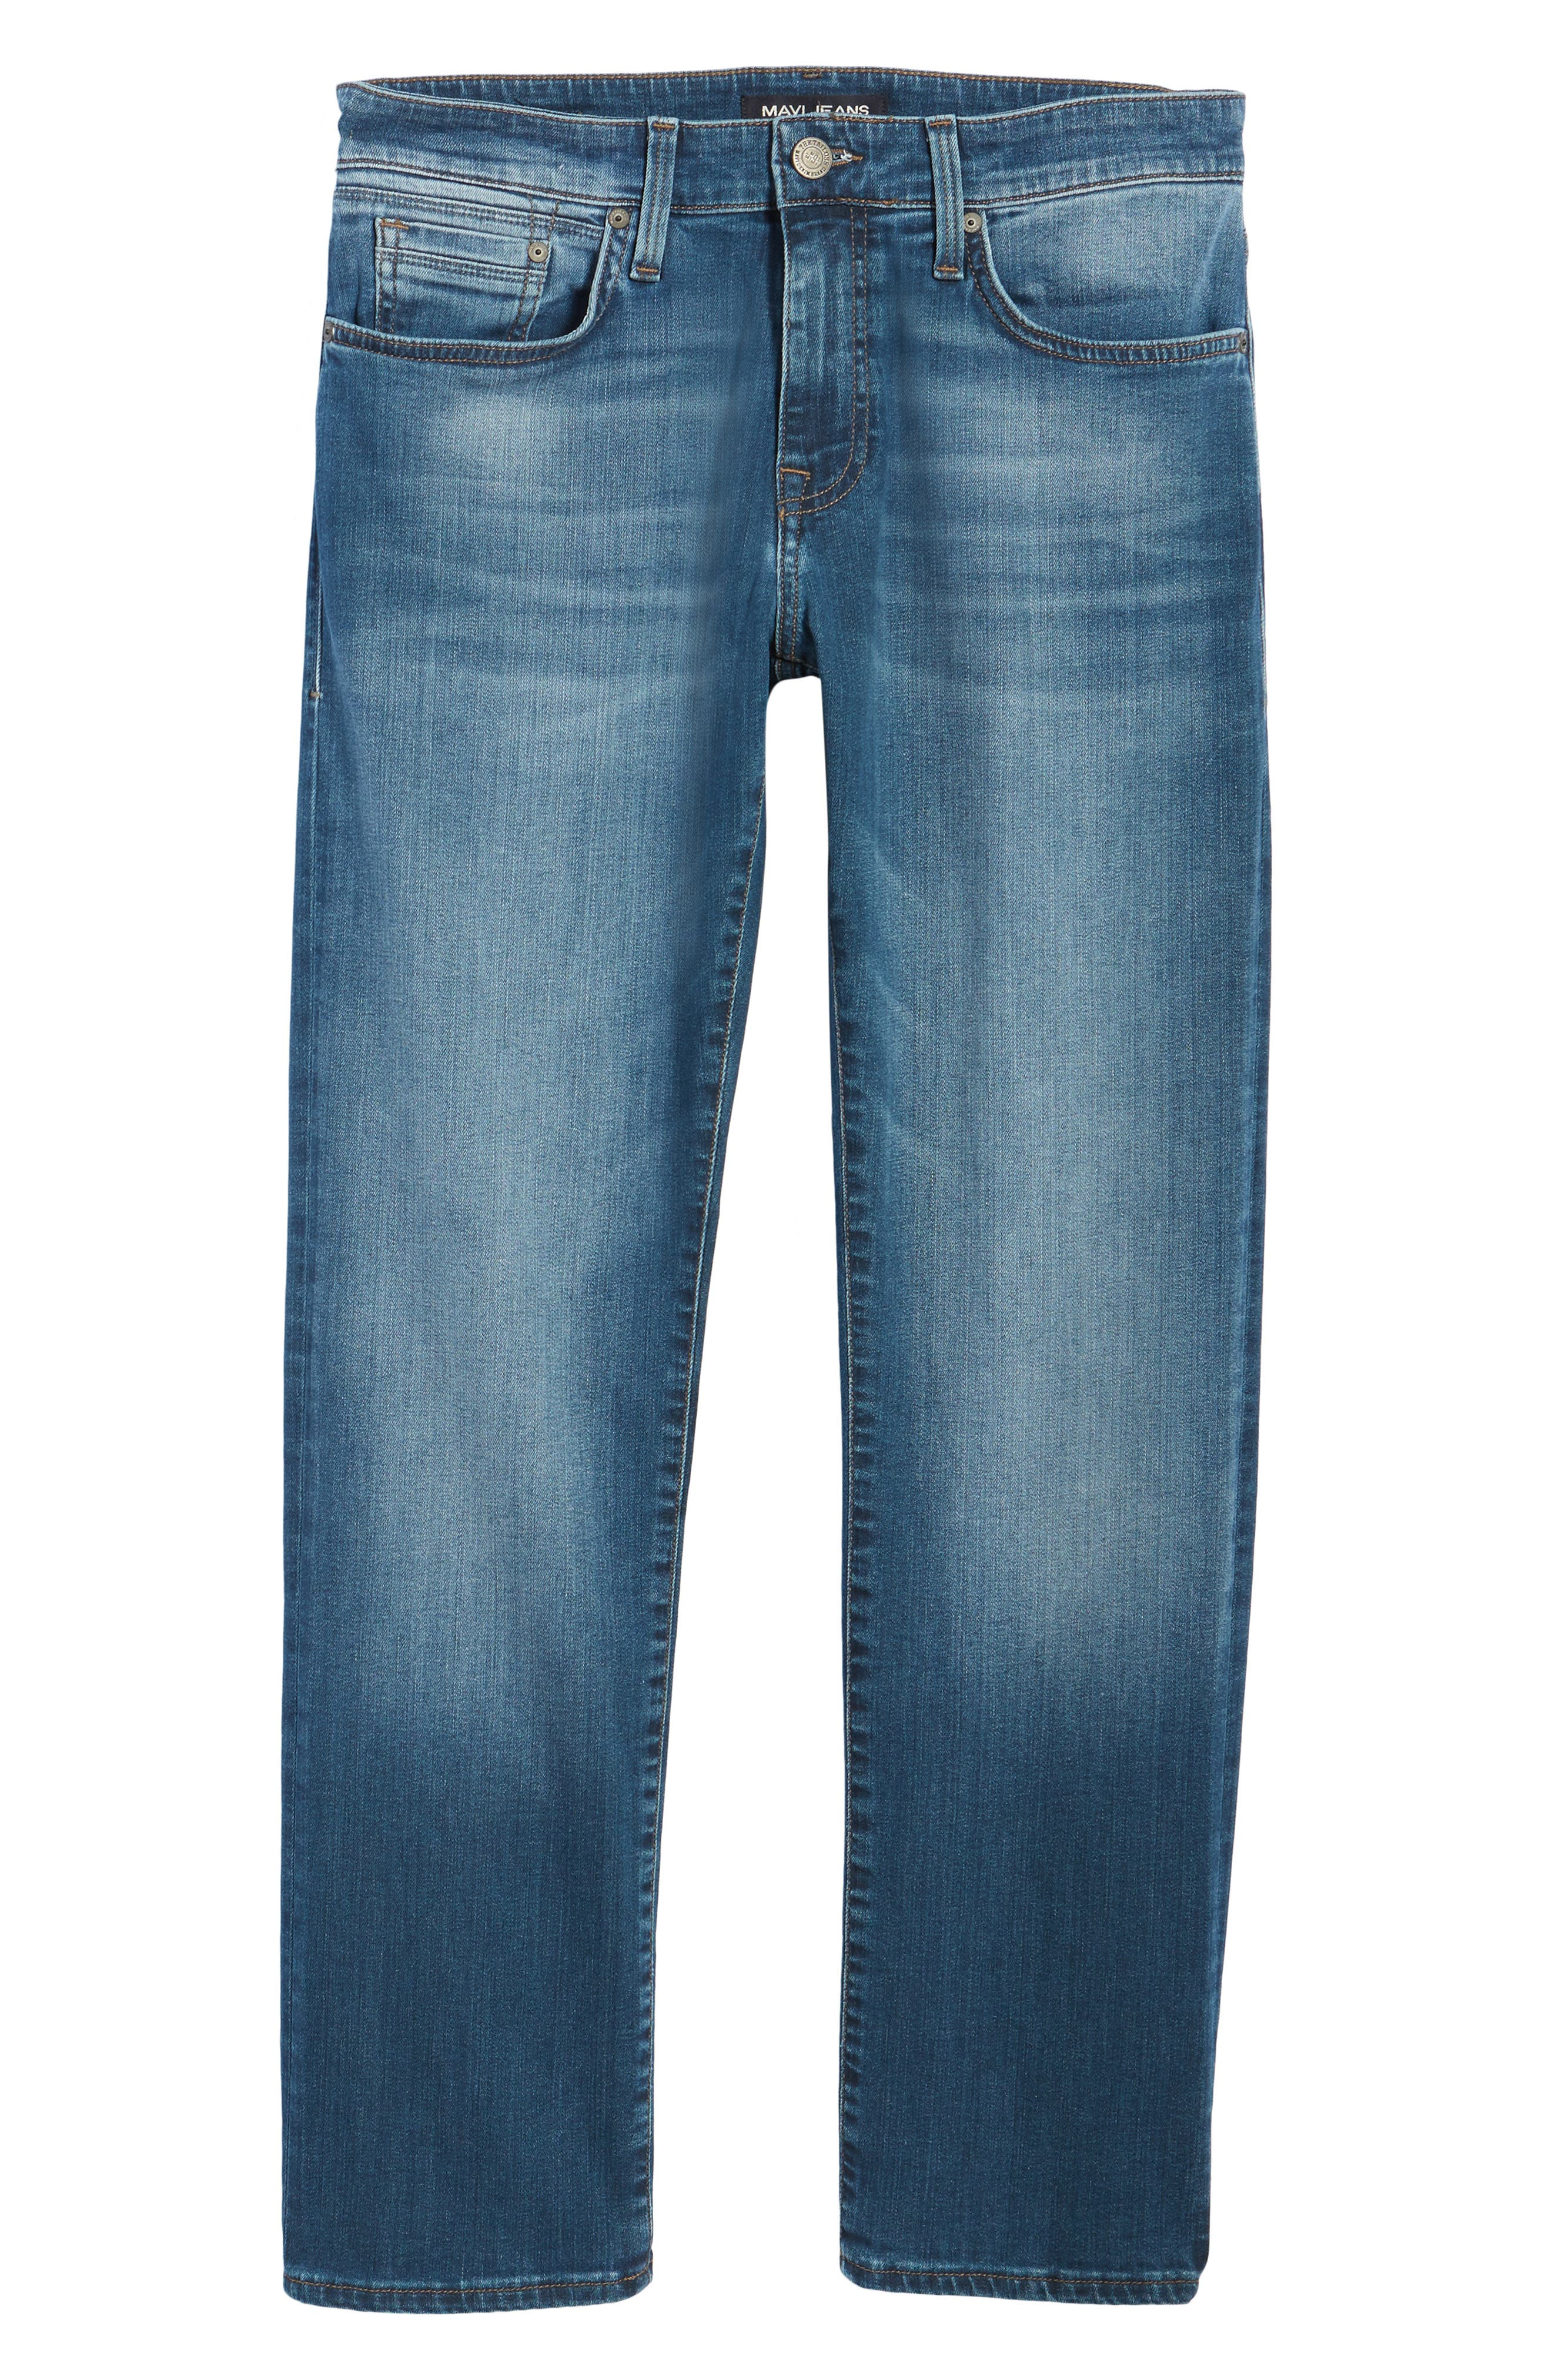 Zach Straight Fit Jeans,                             Alternate thumbnail 6, color,